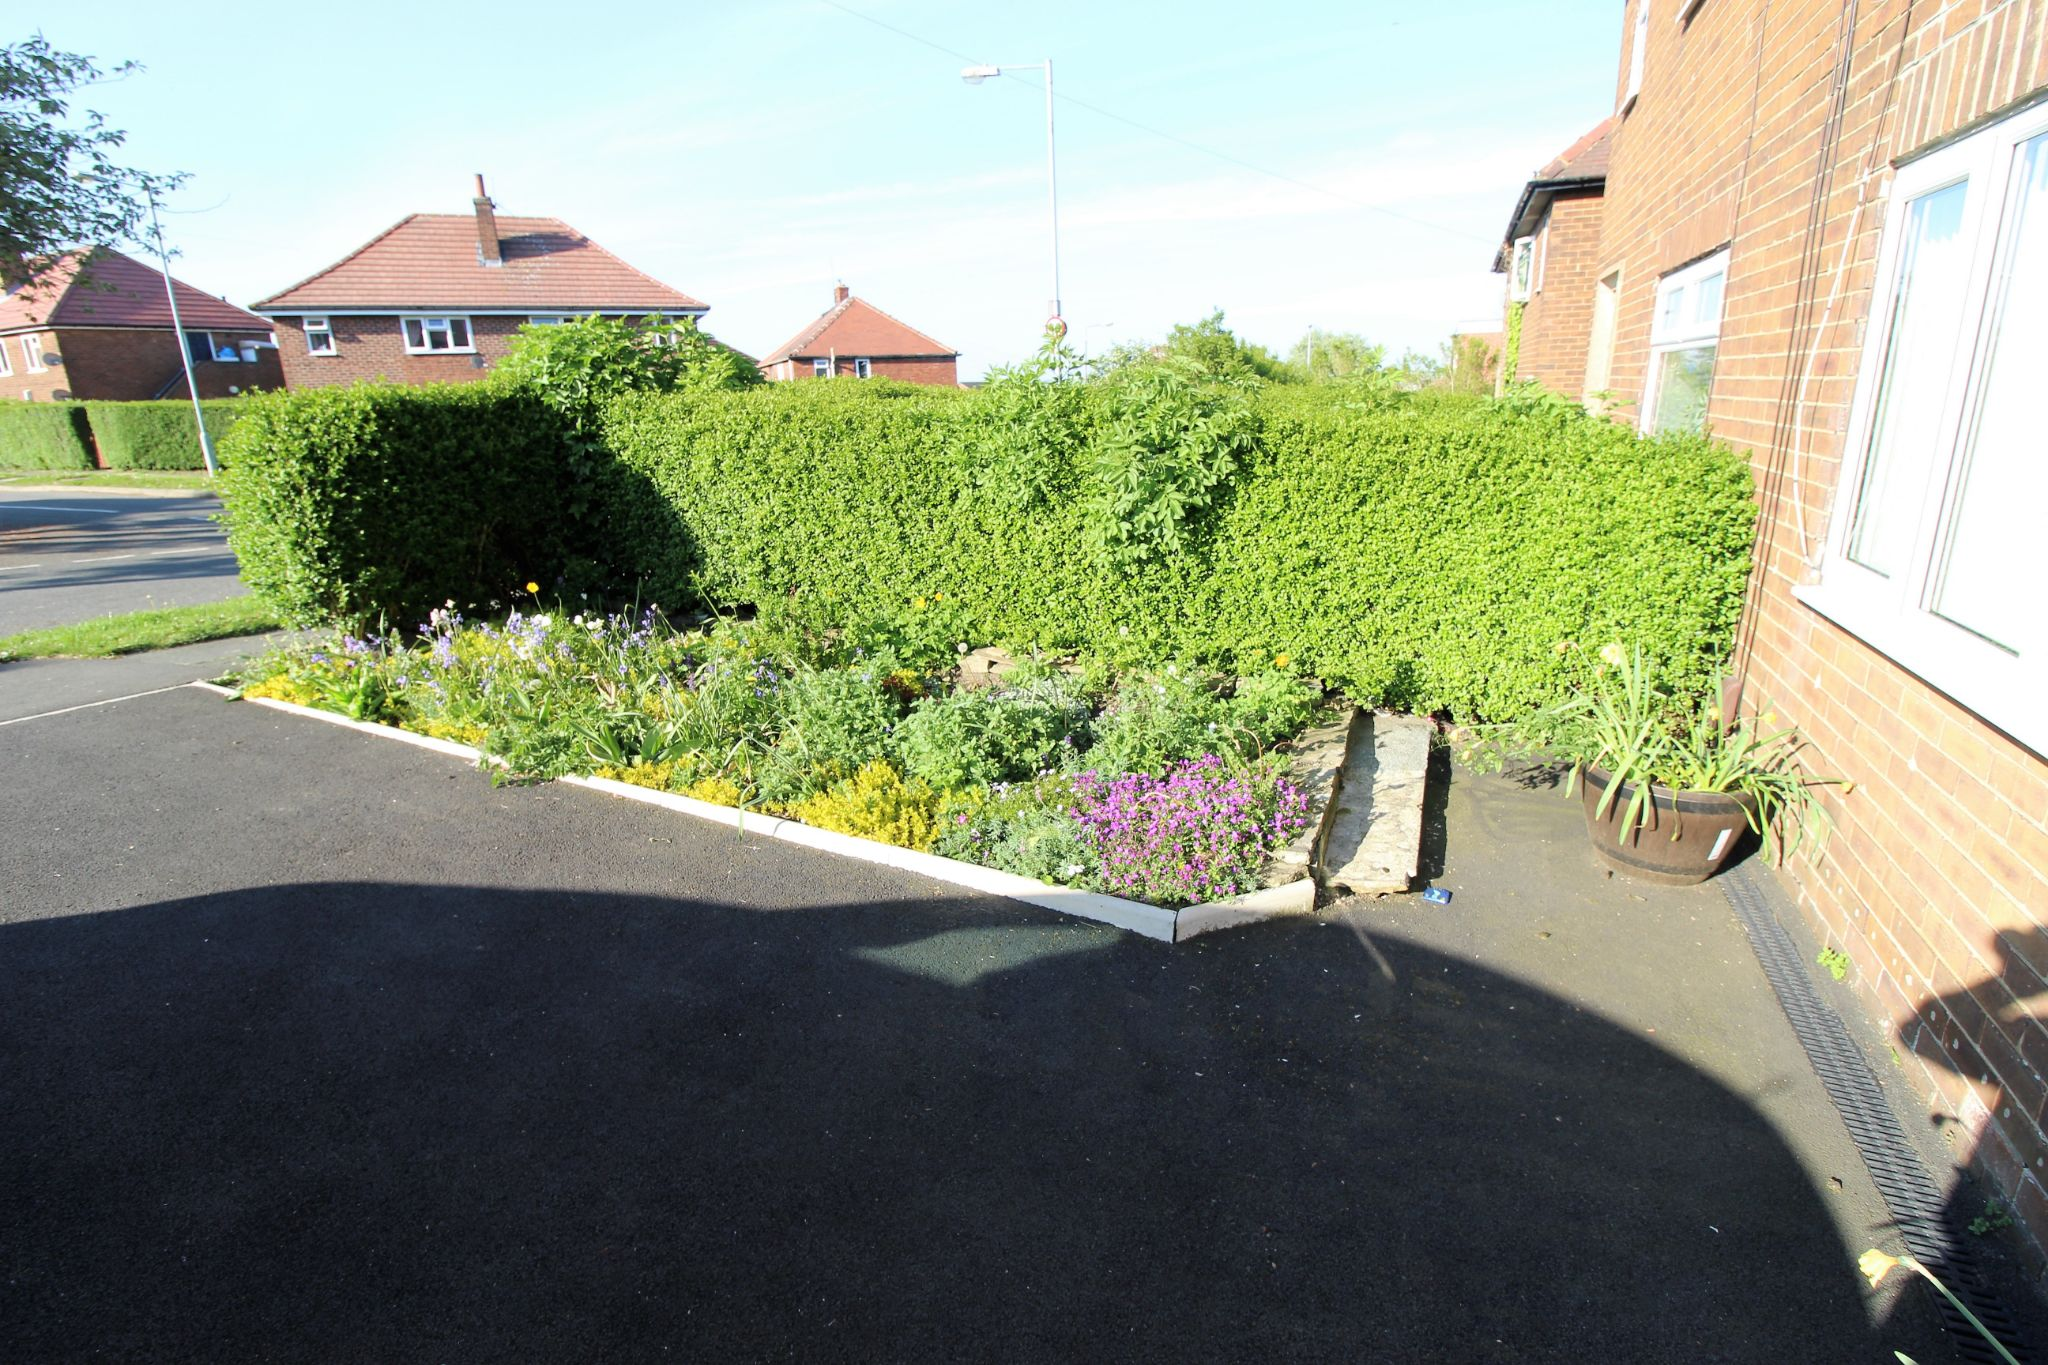 3 bedroom semi-detached house SSTC in Brighouse - Front drive and flower bed